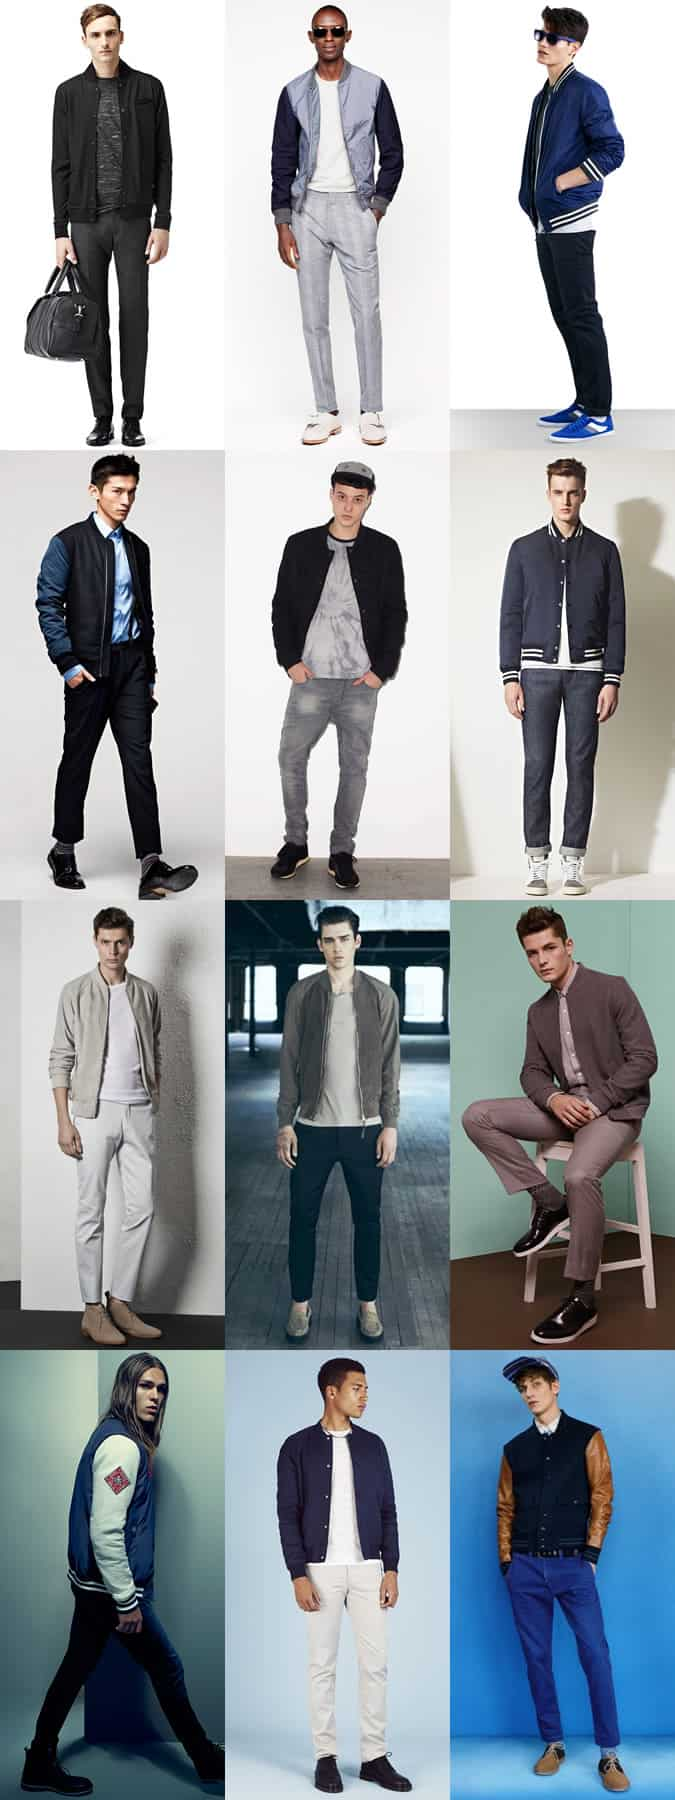 Men's Varsity/Baseball Jacket Outfit Inspiration - Sports Luxe-Inspired Lookbook